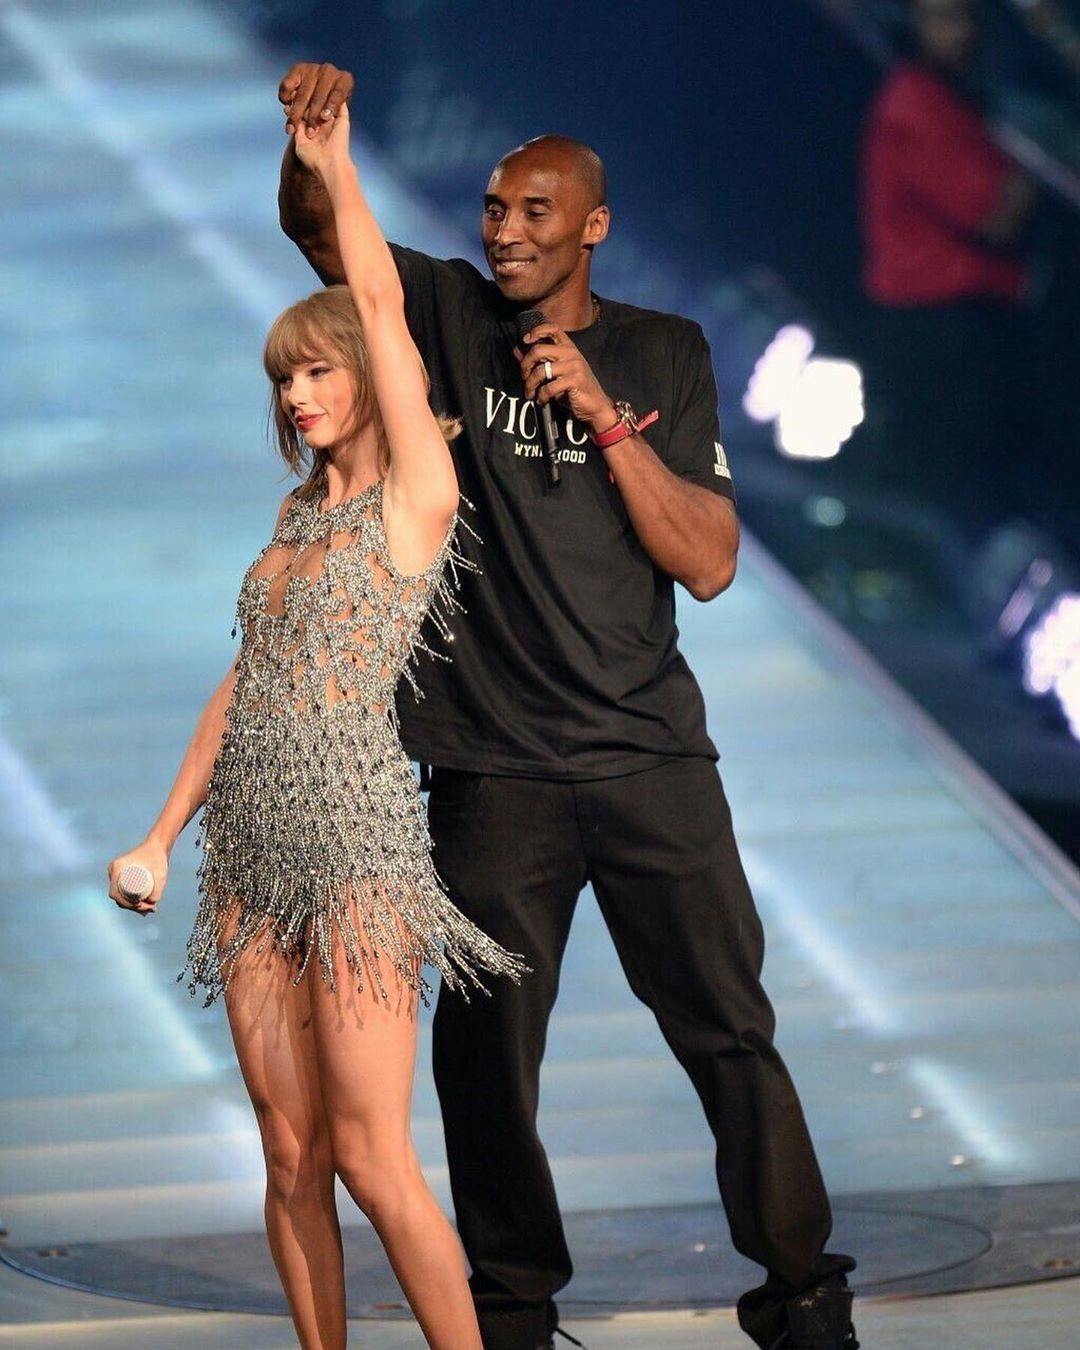 Kobe Bryant And Taylor Swift In 2020 Photos Of Taylor Swift Taylor Swift Style Taylor Swift Hot